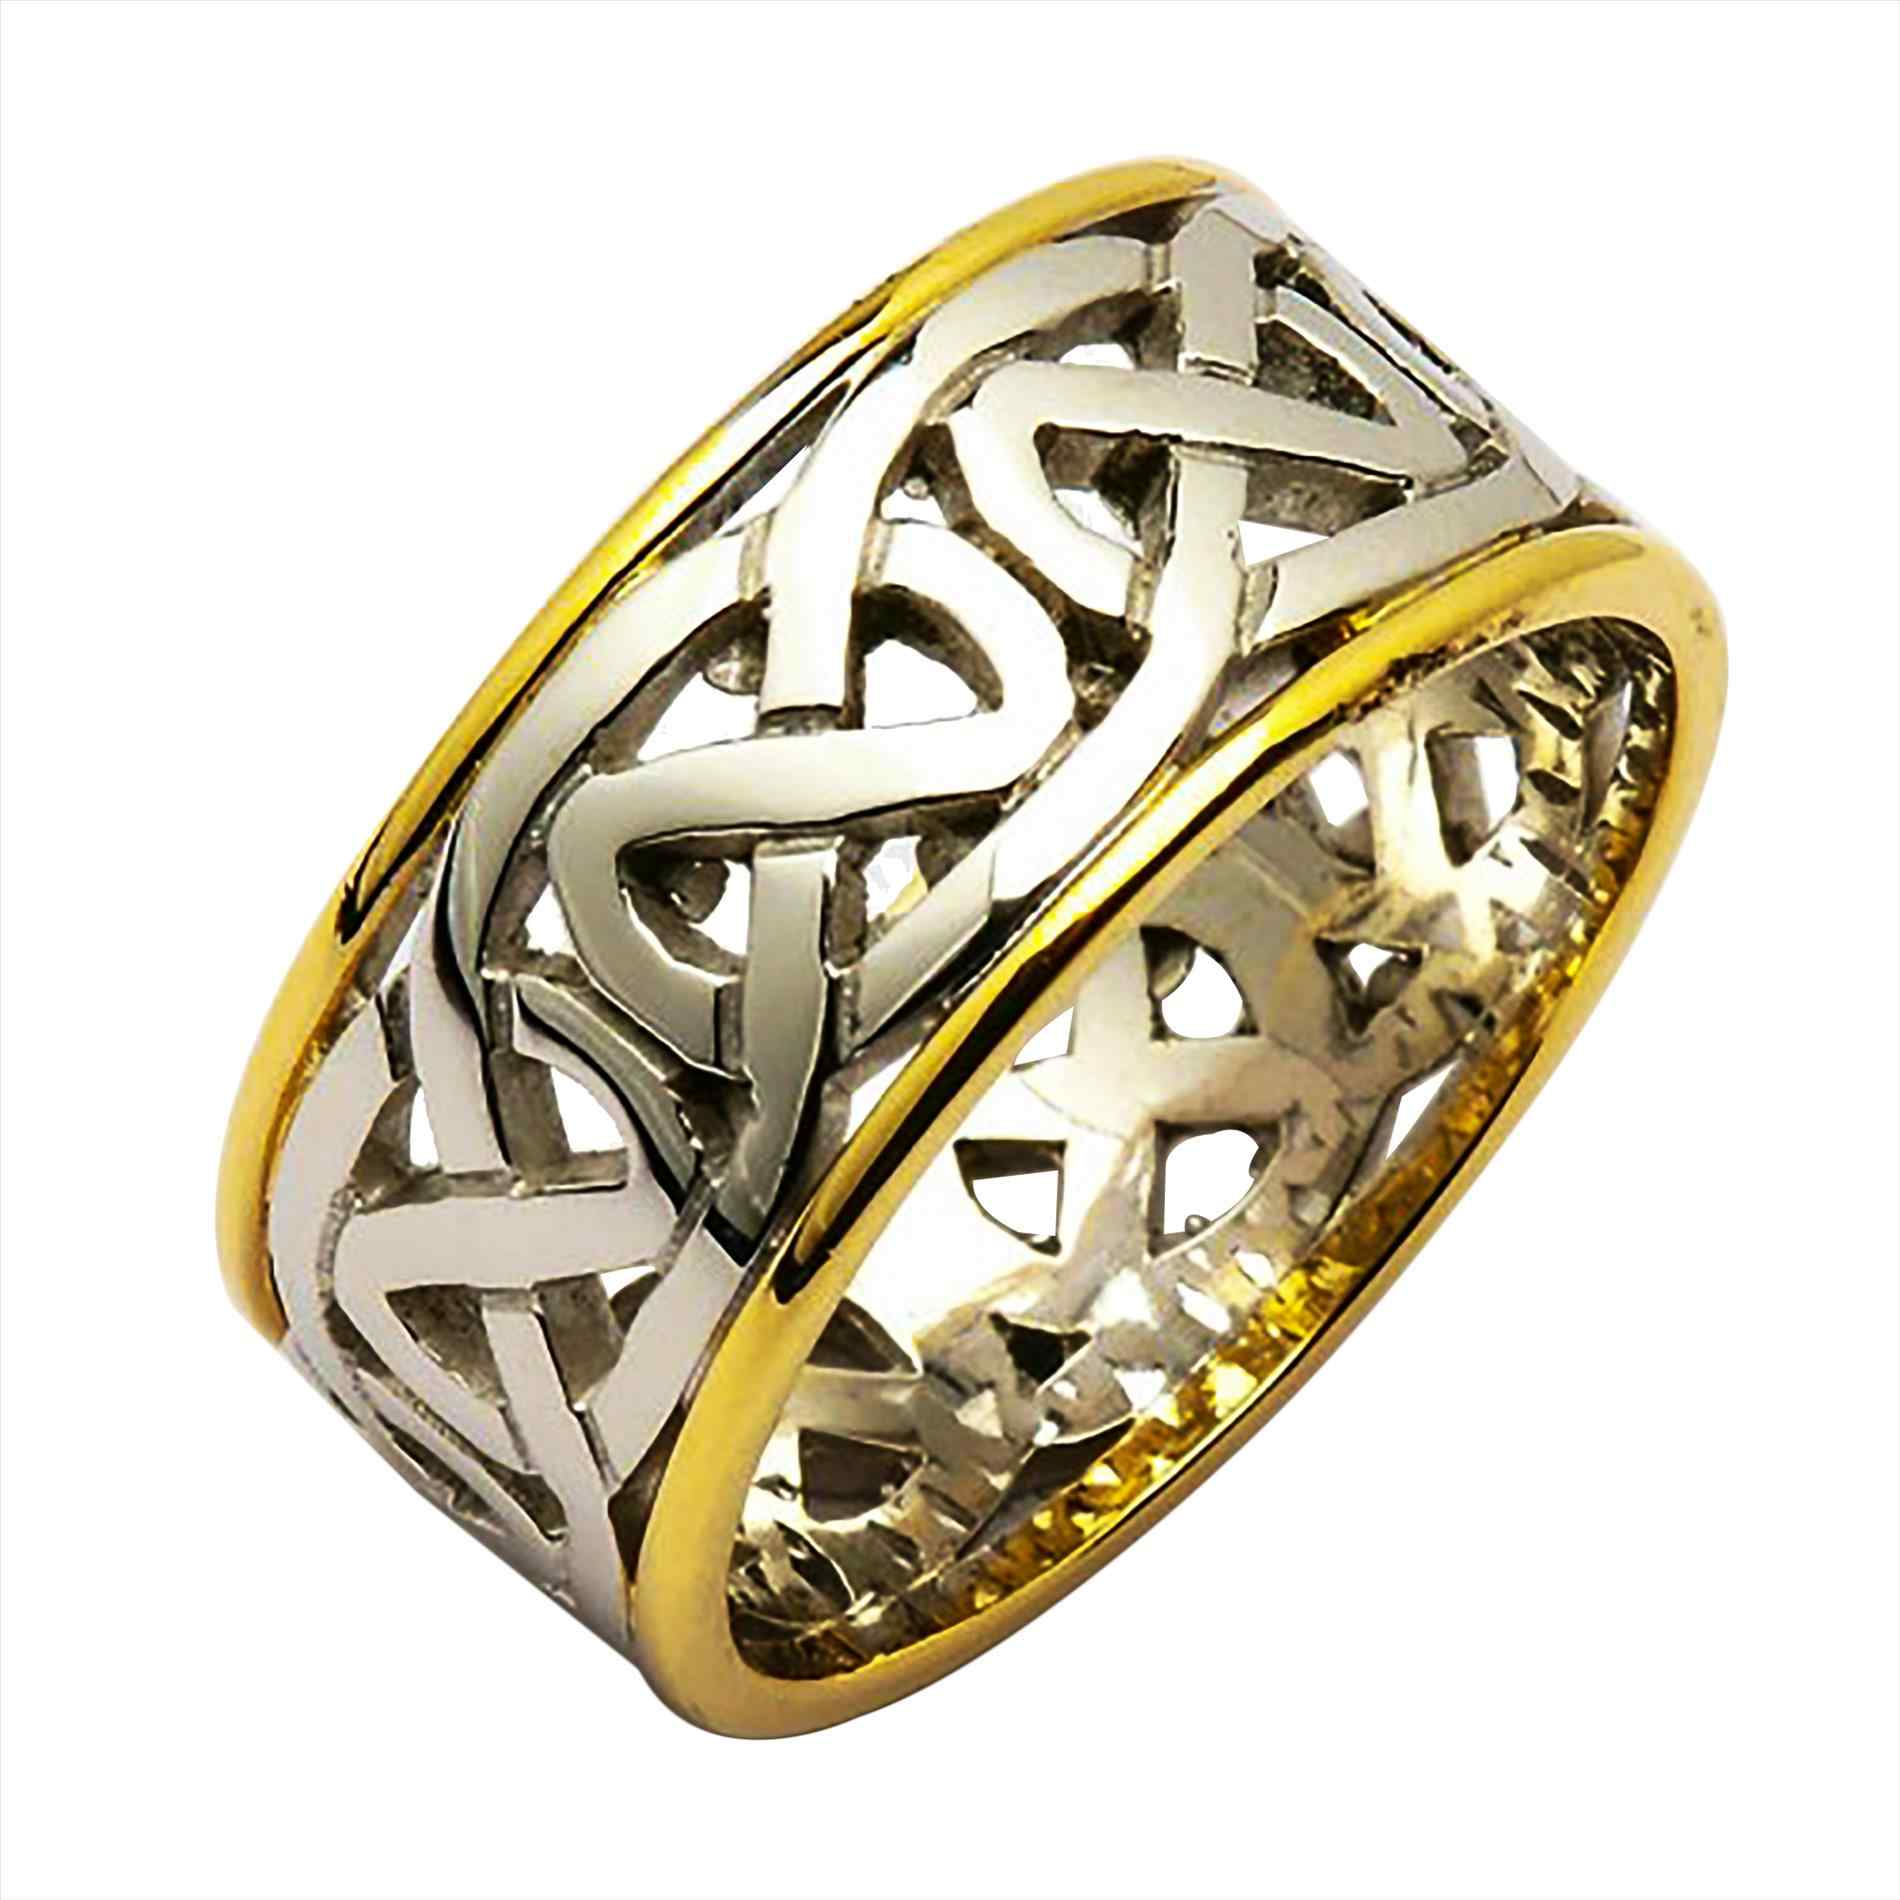 de ring gaelic white must gold wedding yellow pre cartier owned trinity pin les refurbished rings